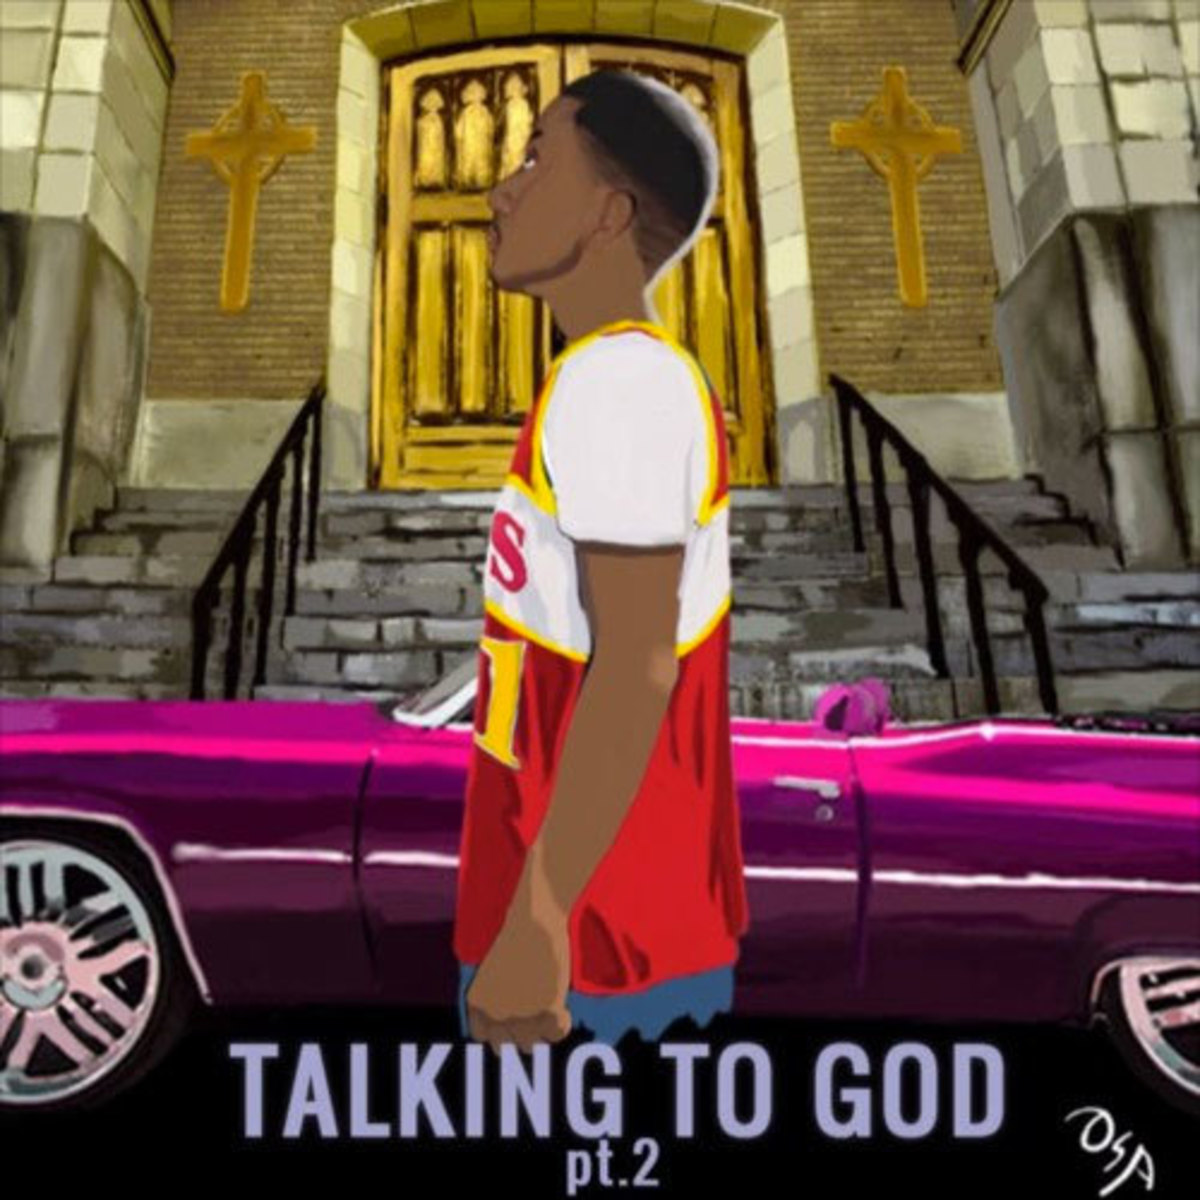 deante-hitchcock-talking-to-god-pt-2.jpg